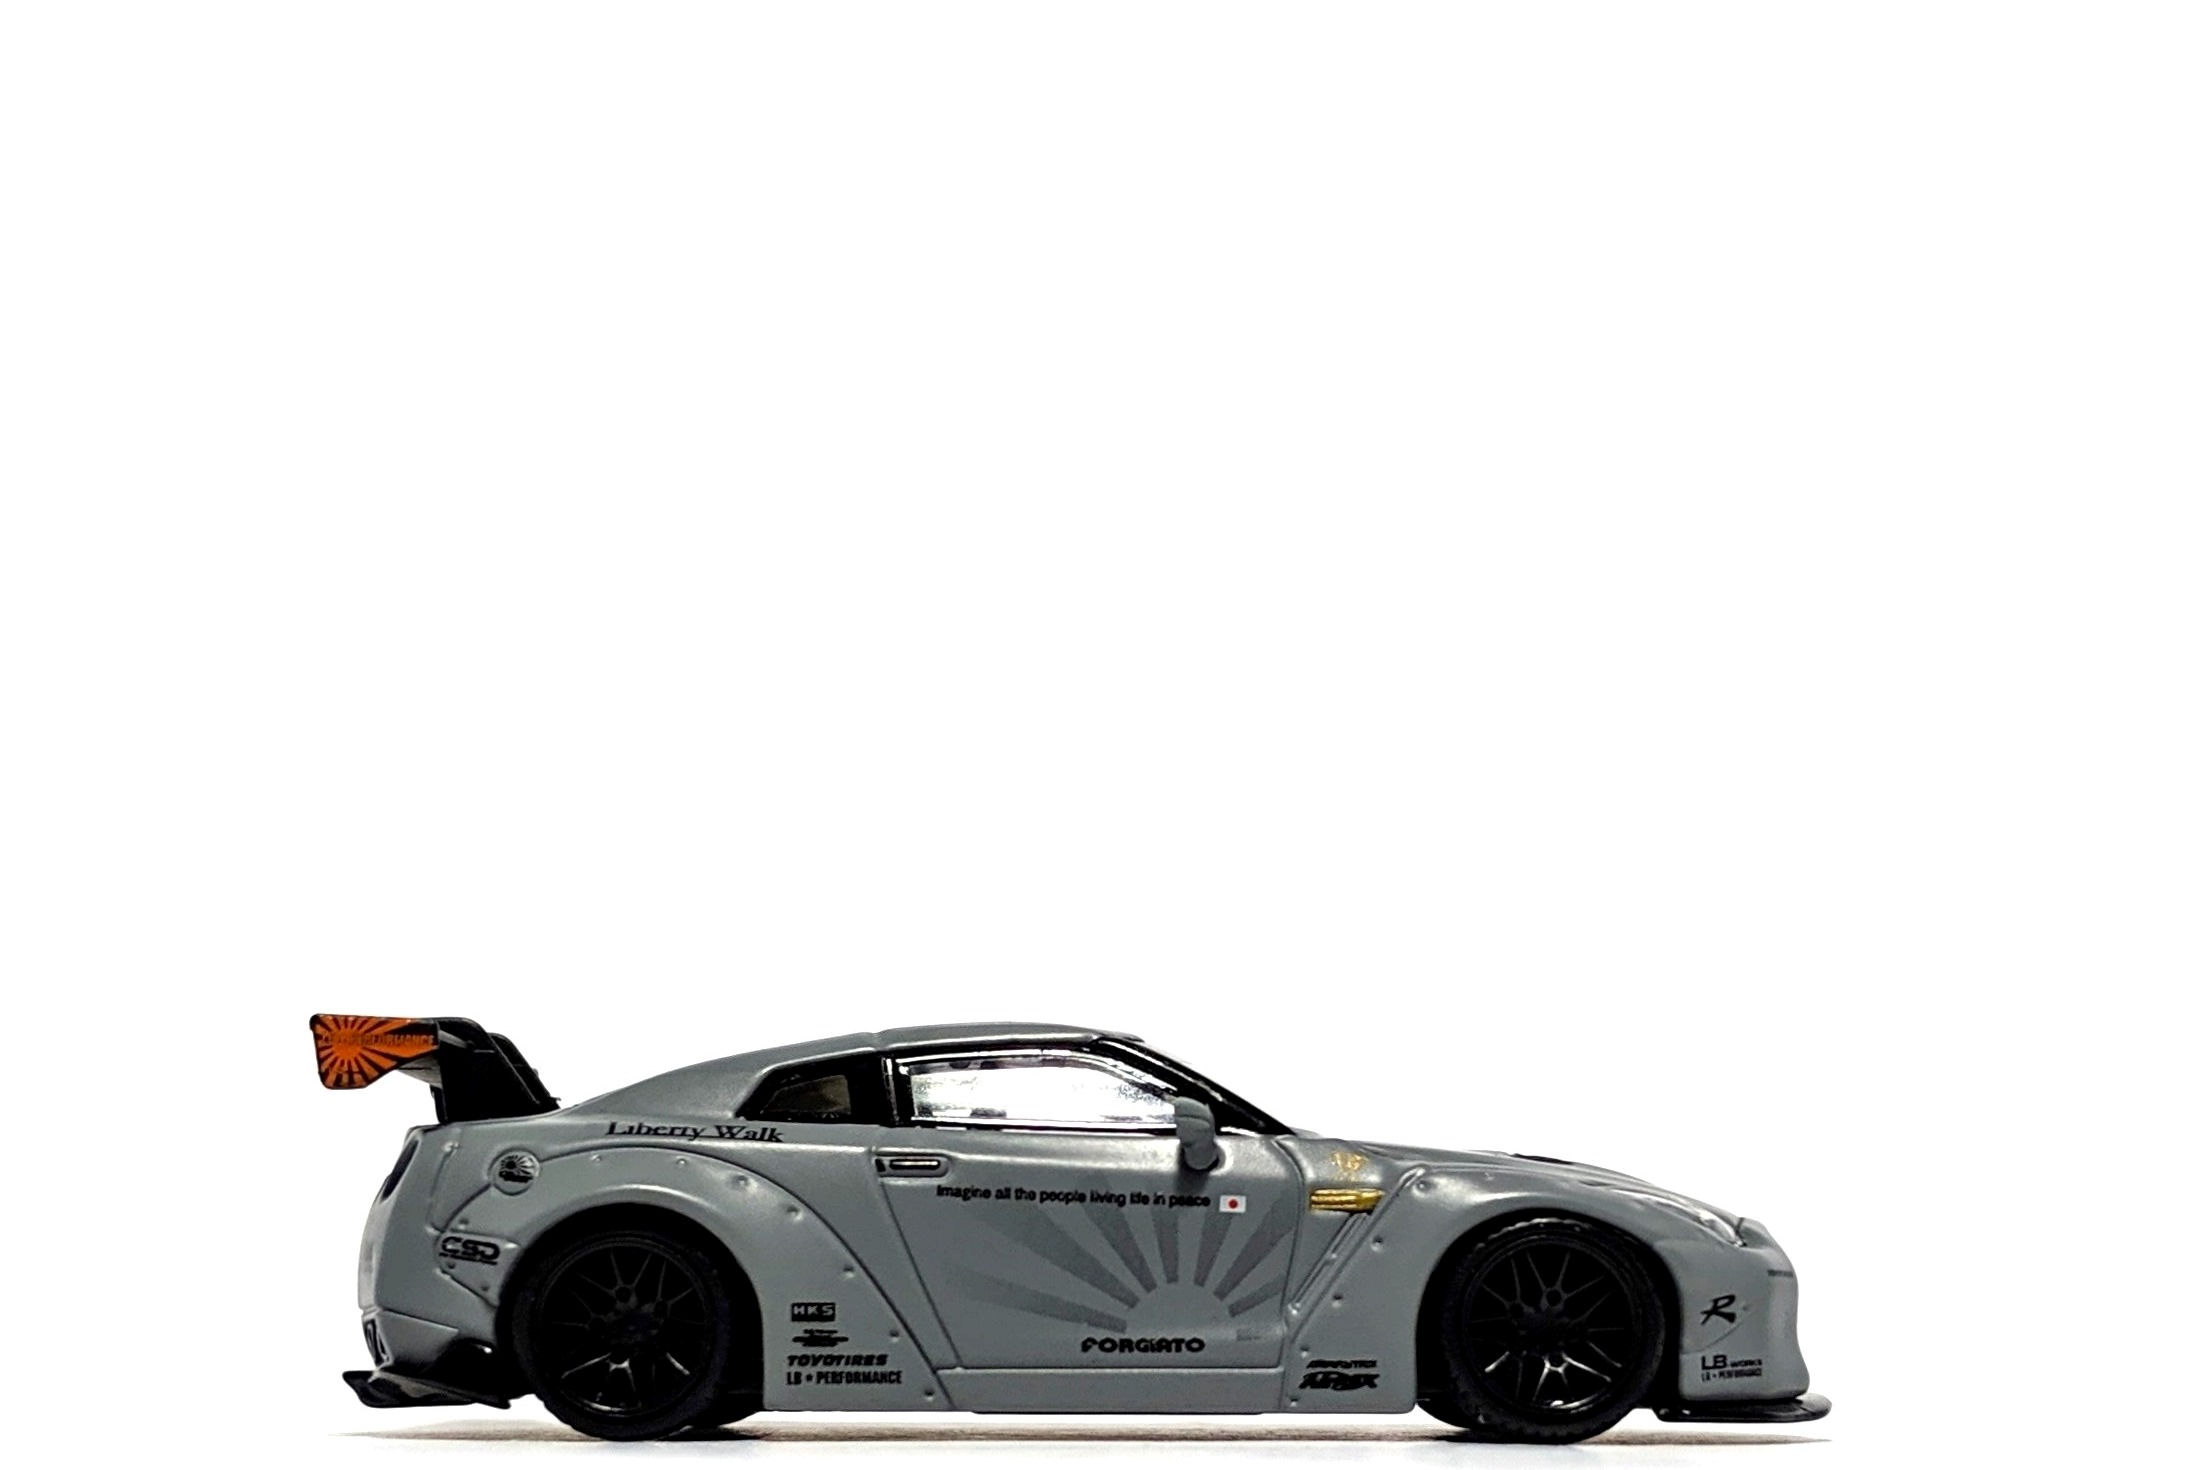 LB-Works Nissan GT-R in Matte Grey, by Mini GT